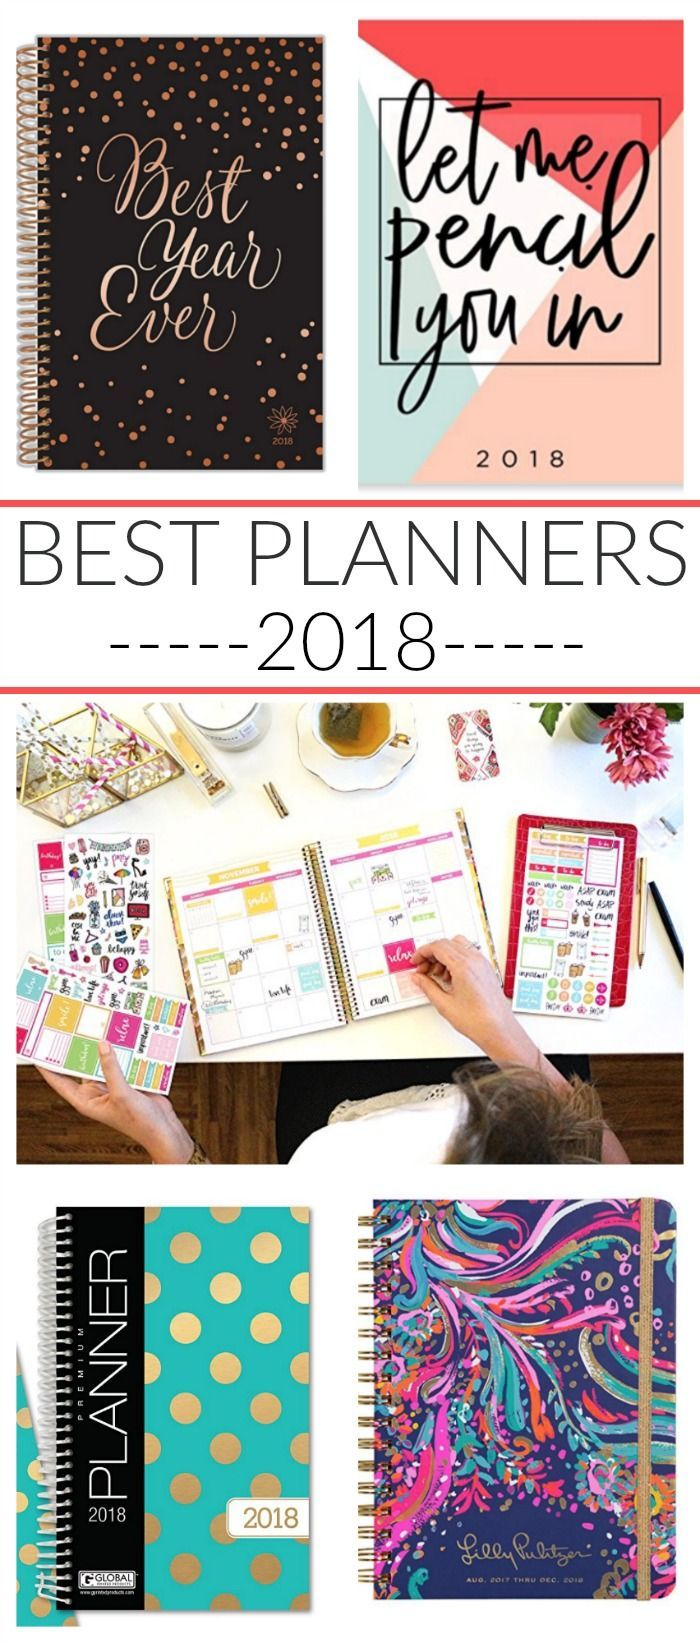 Best Planners 2018 : Get organized and plan ahead with these awesome planners for 2018! Best planners organizers that women will love!